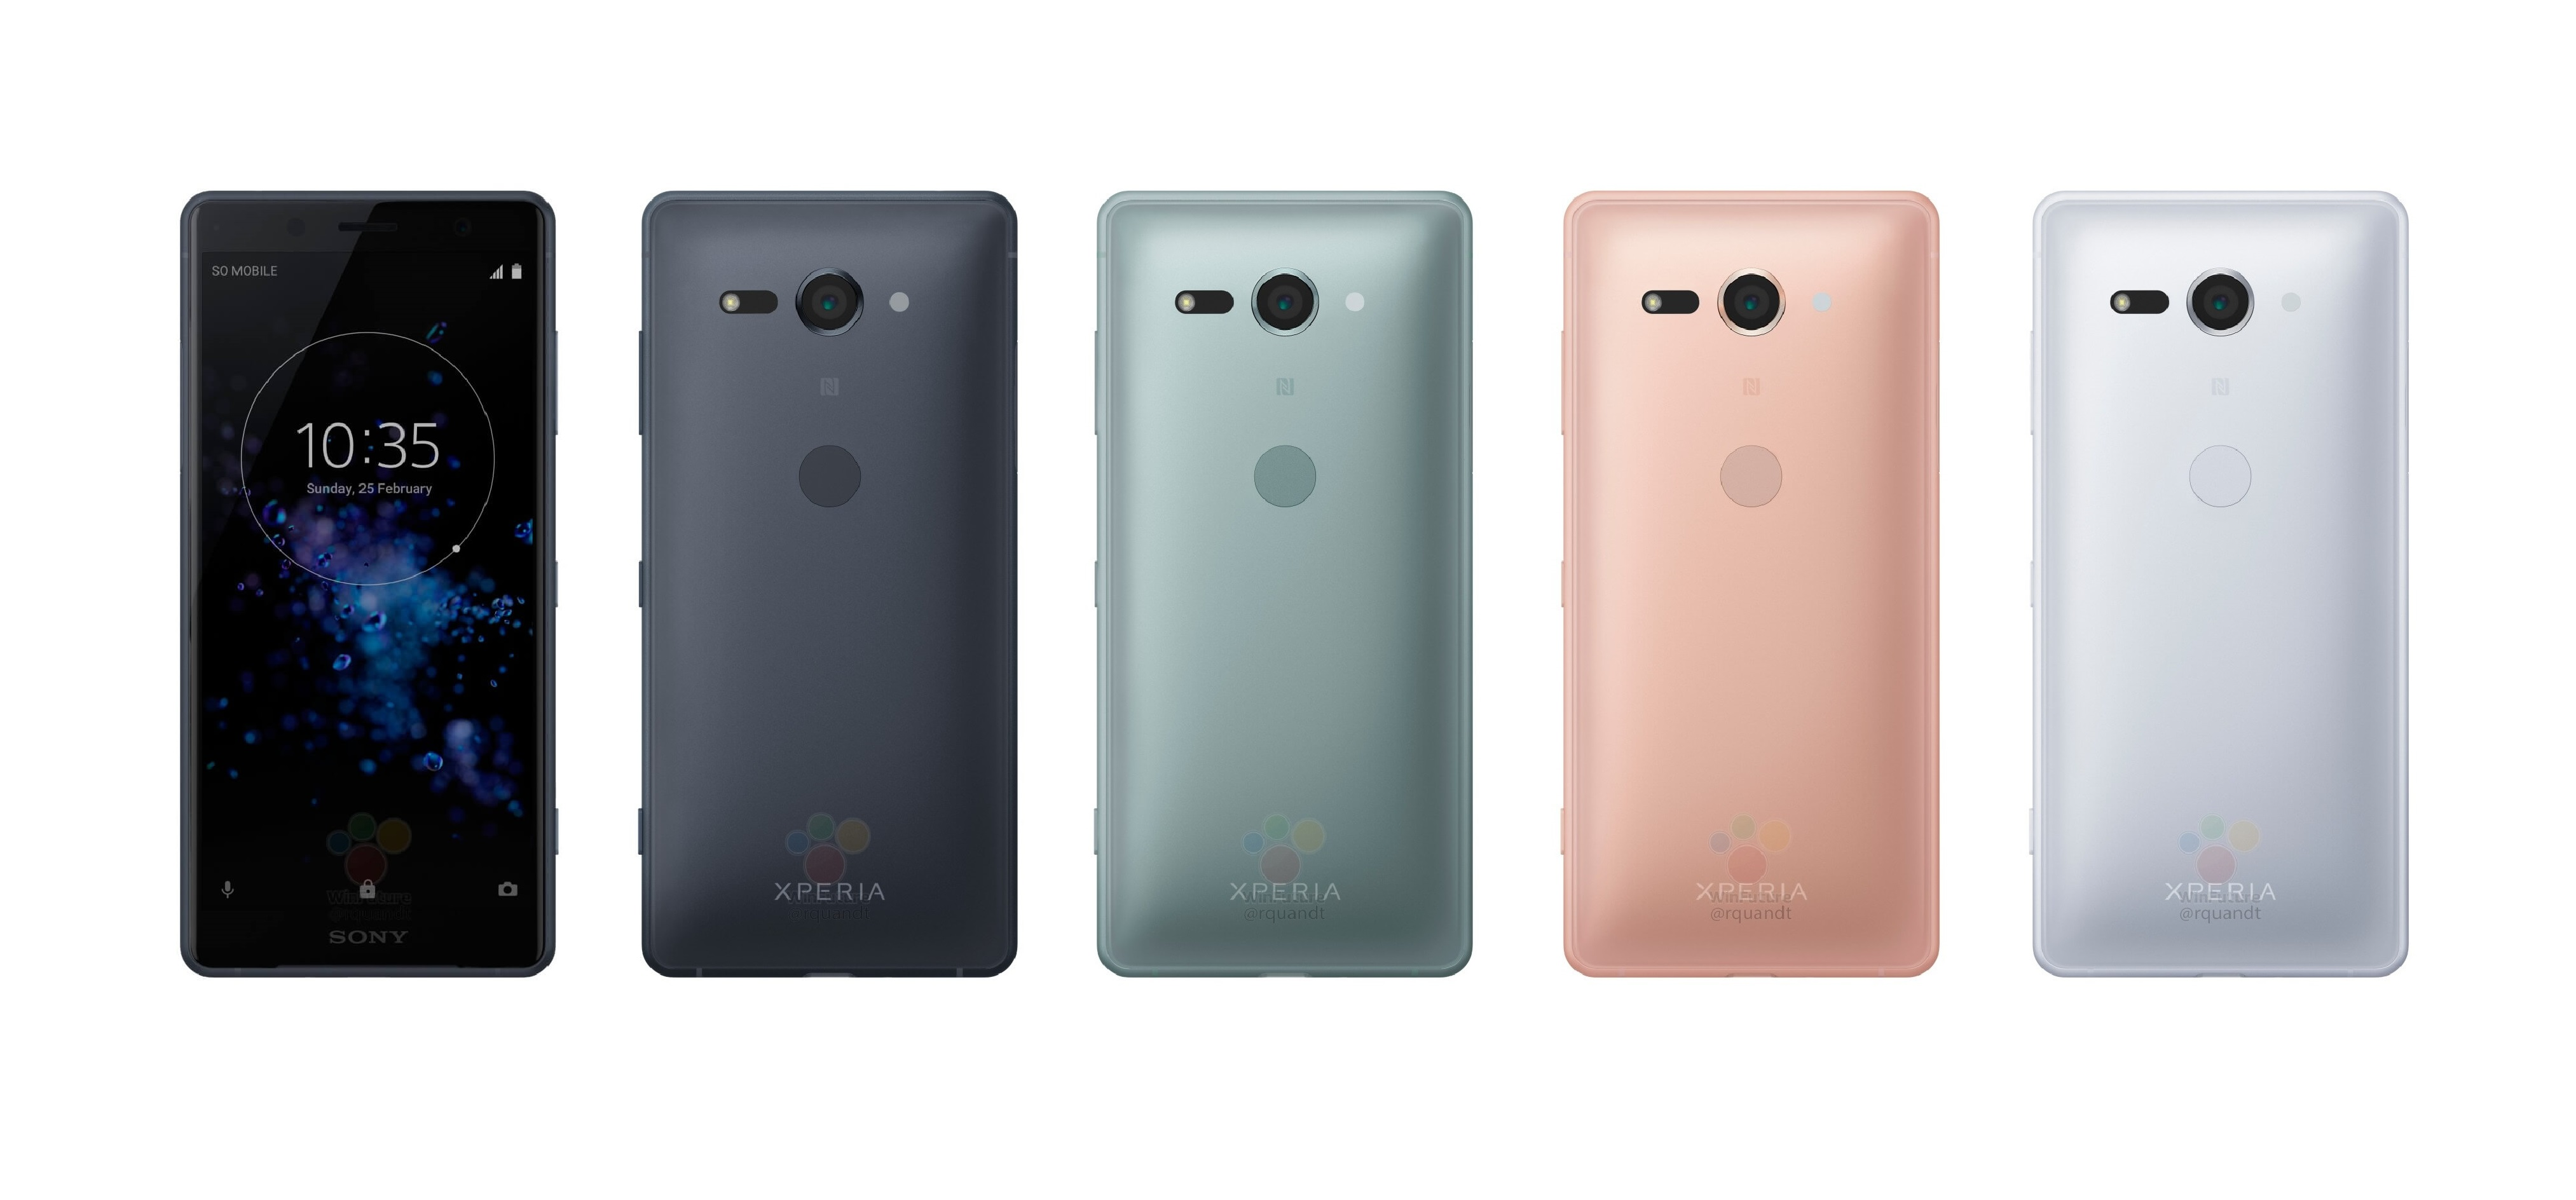 Sony-Xperia-XZ2-Compact-1519465373-banner